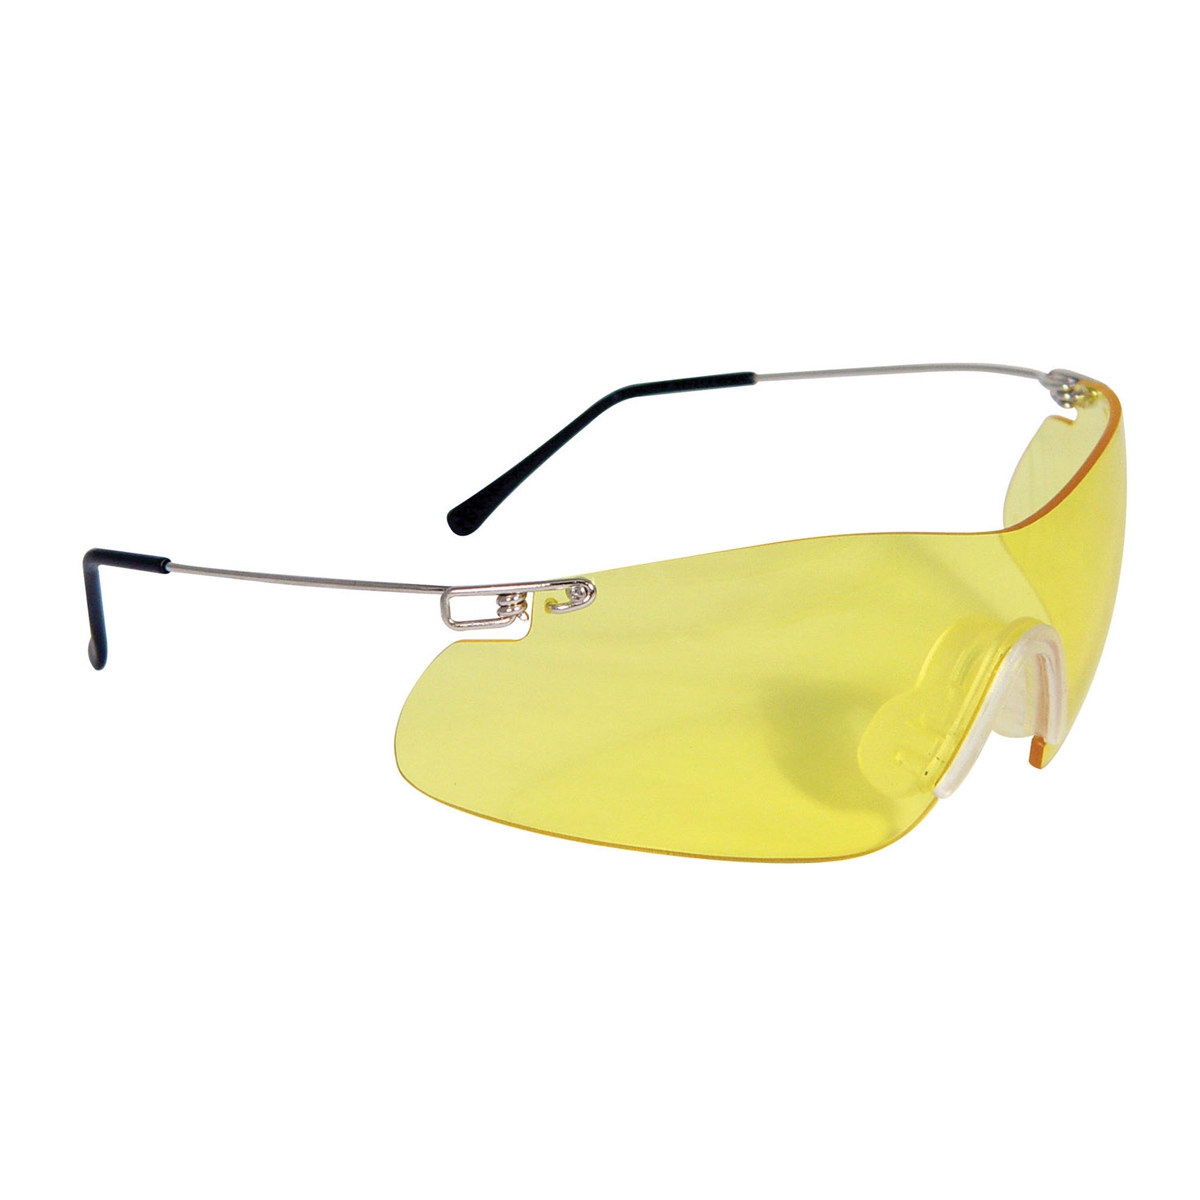 Frameless Shooting Glasses : Radians Clay Pro Shooting Glasses - Silver Temples - Amber ...